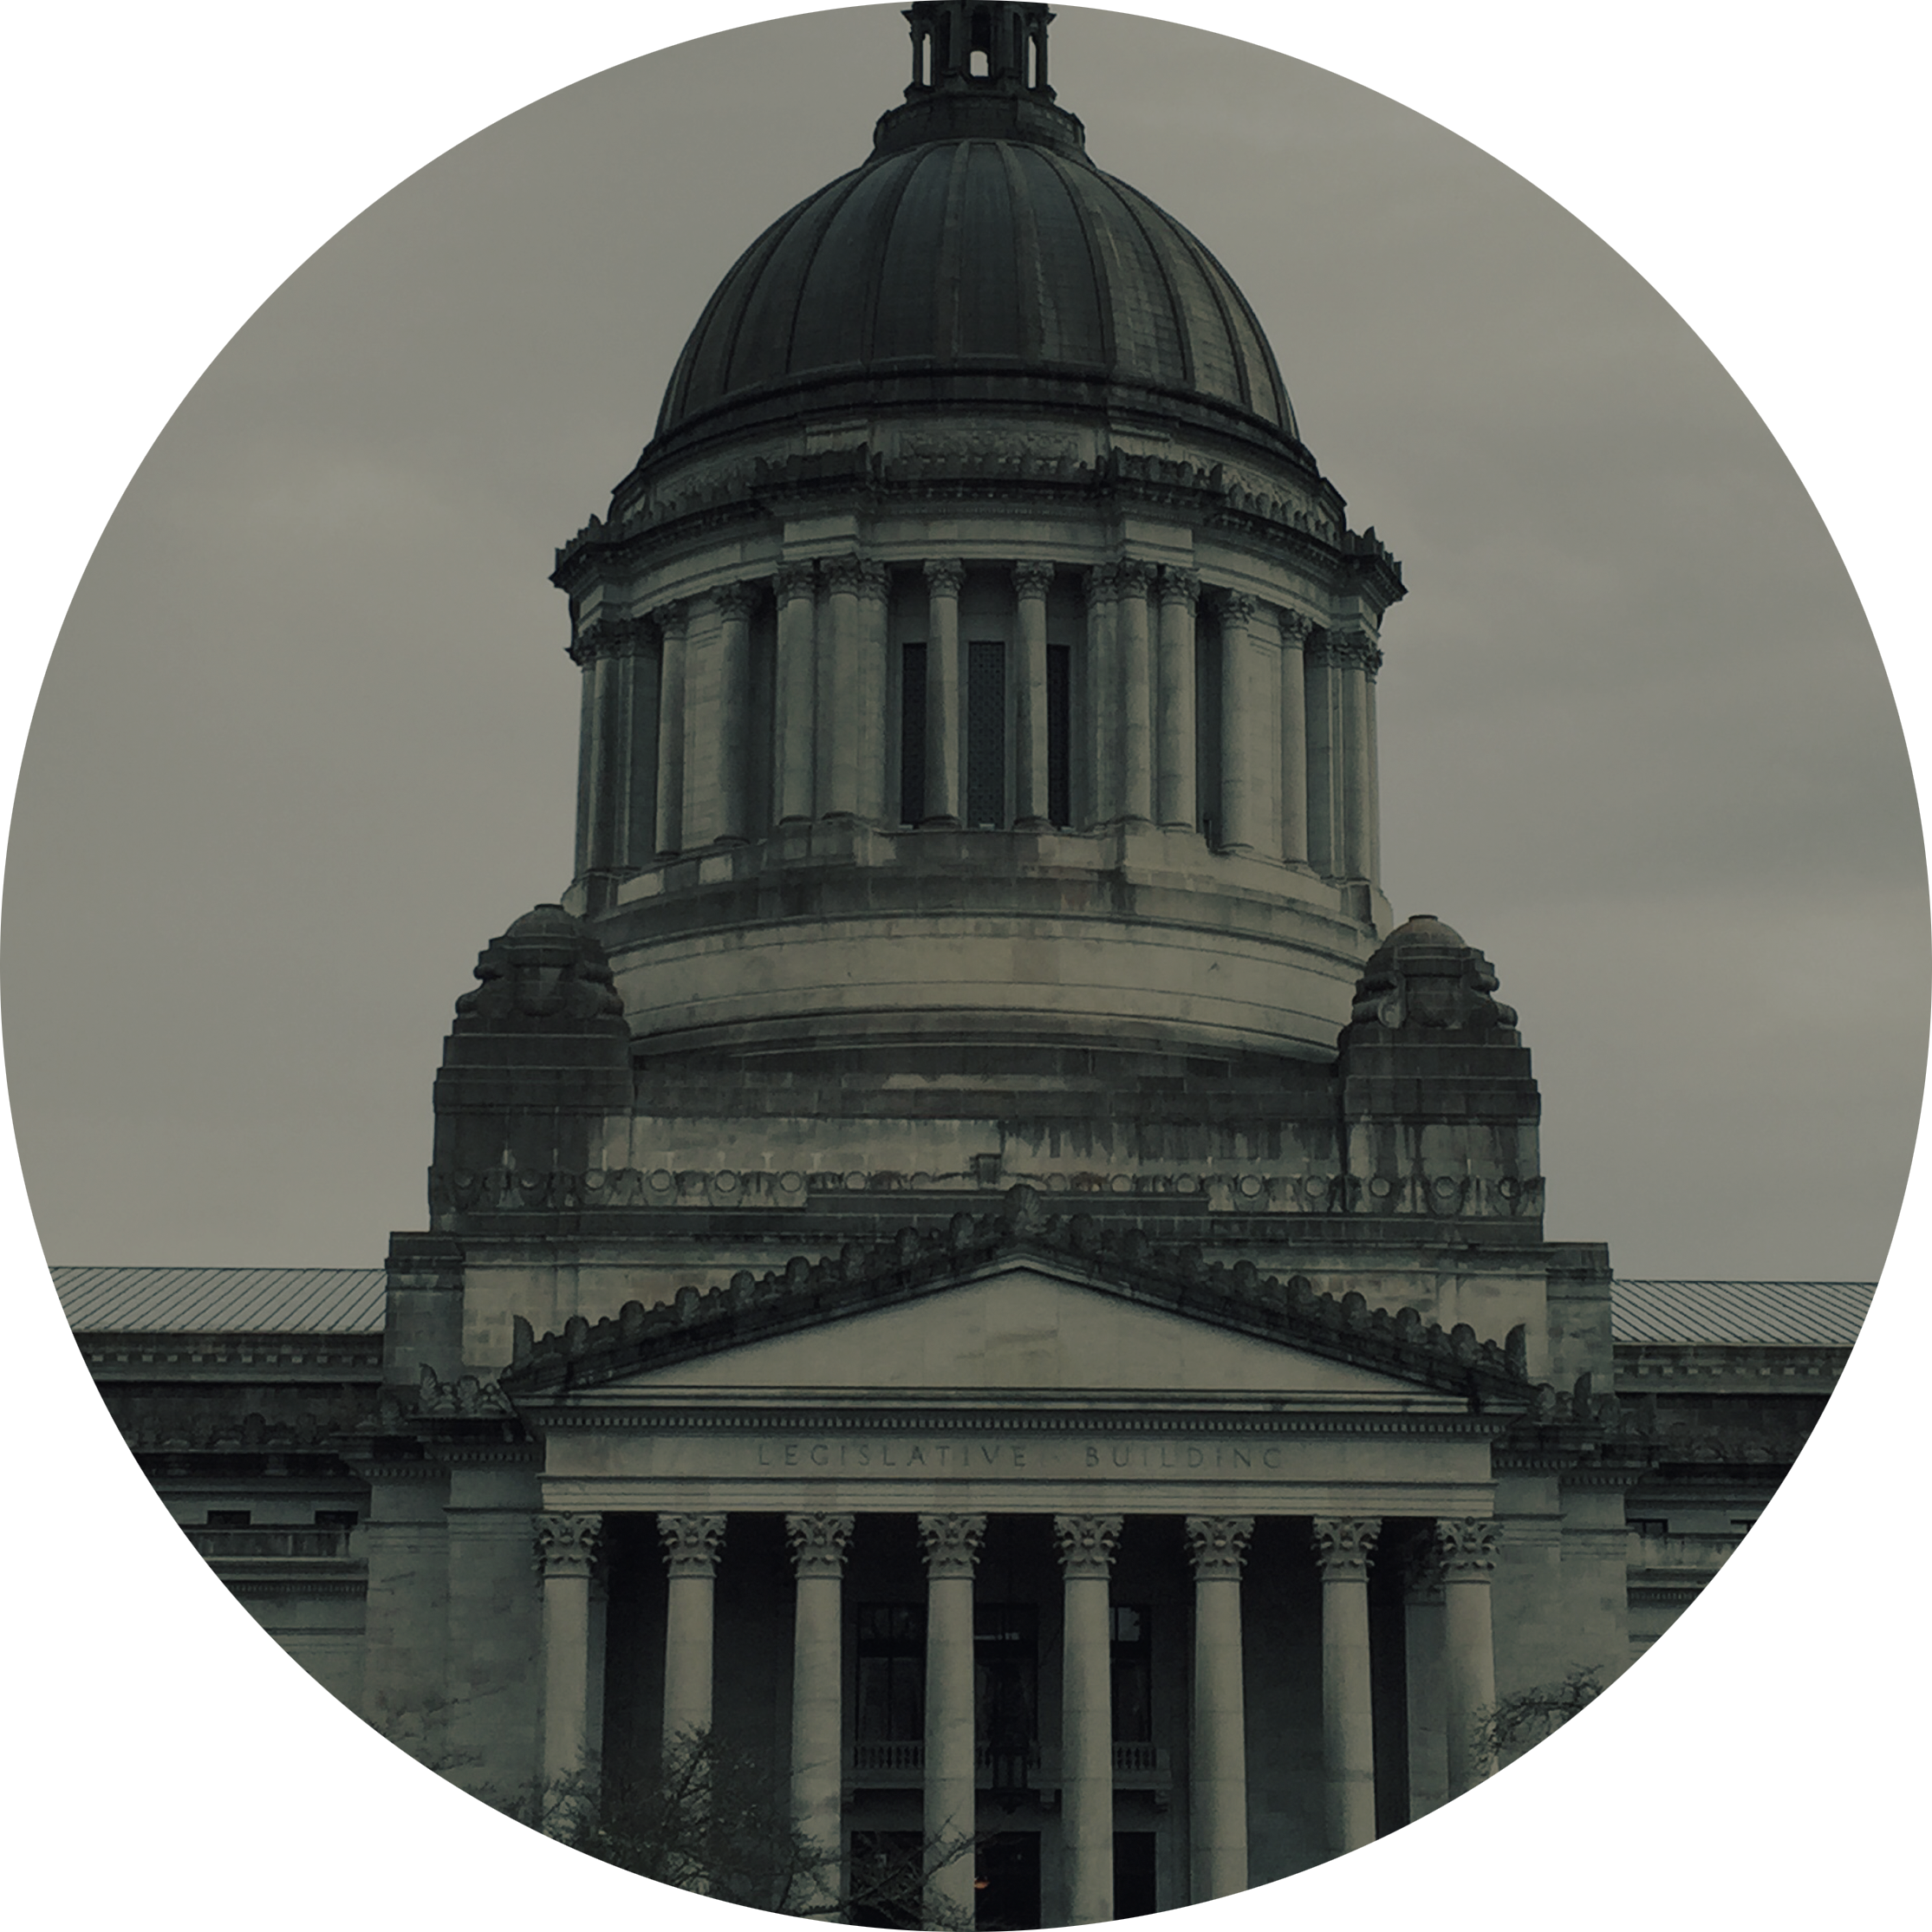 Washington_State_Capitol_Building.png